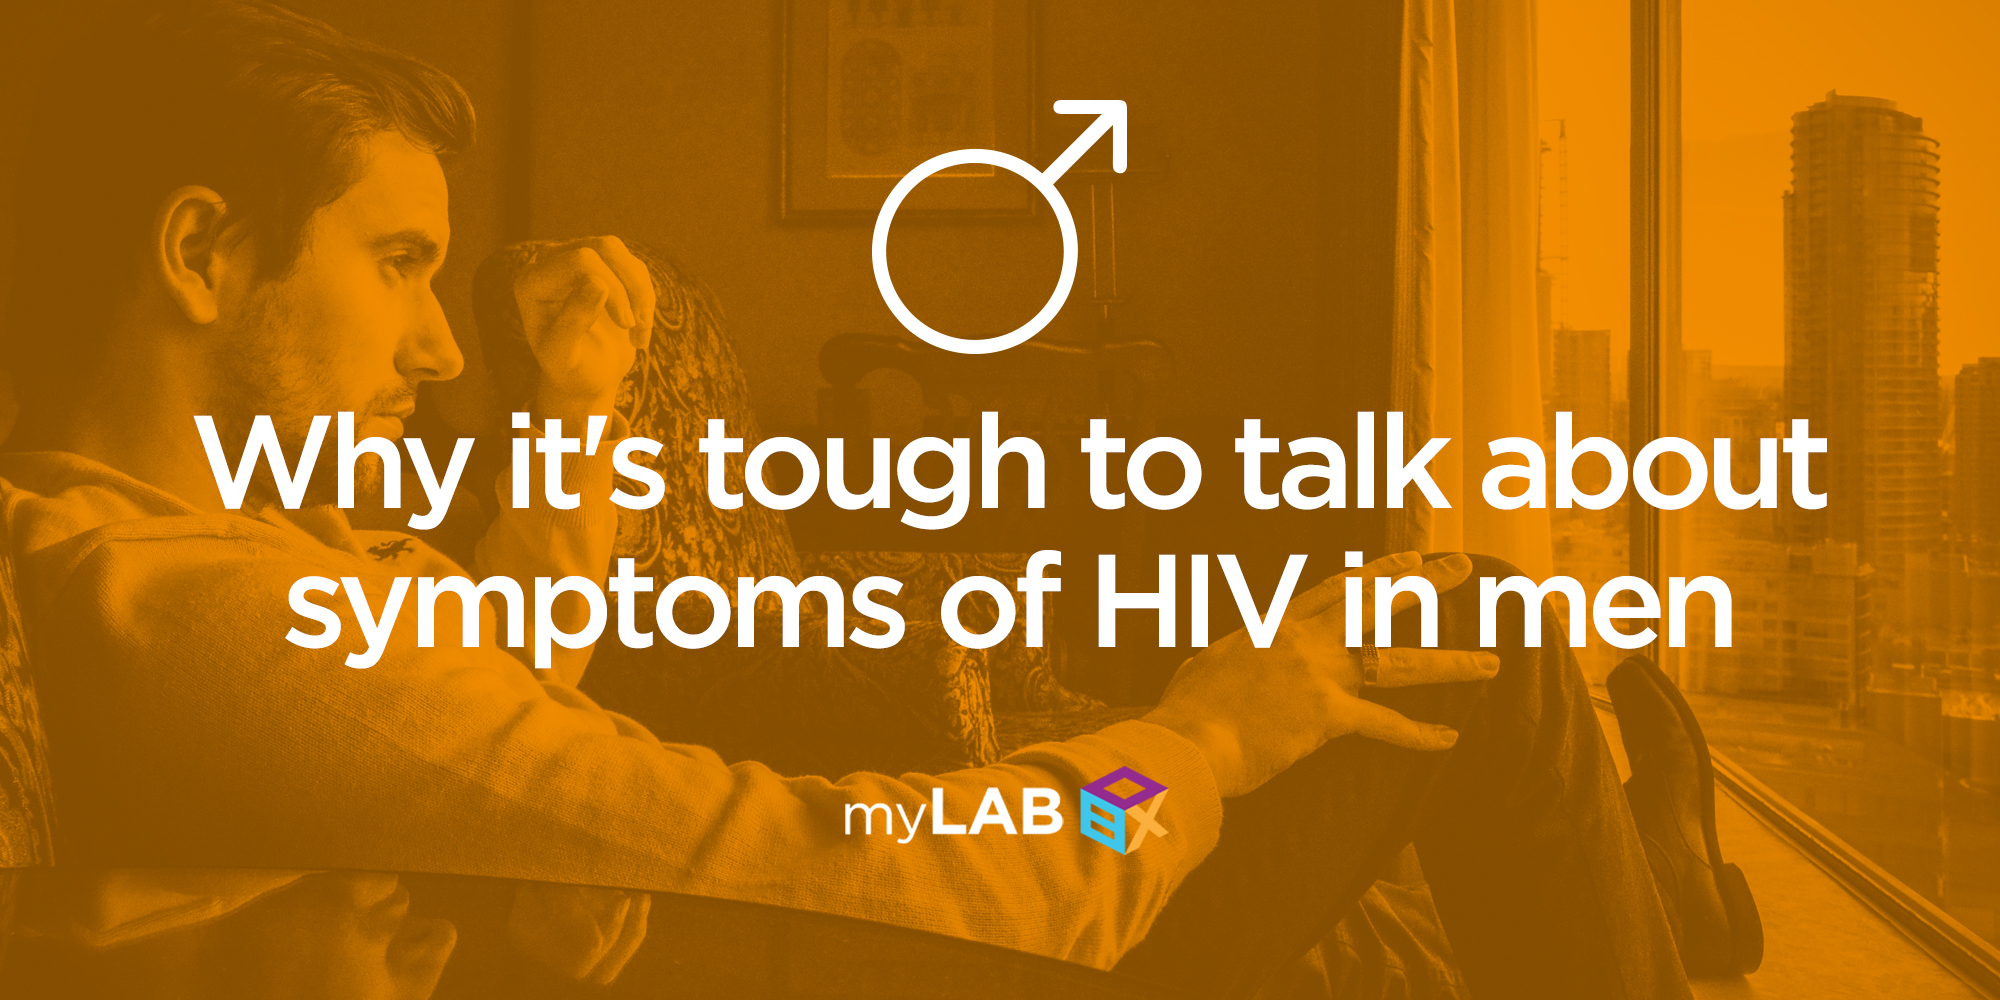 Why it's Tough to Talk about Symptoms of HIV in Men